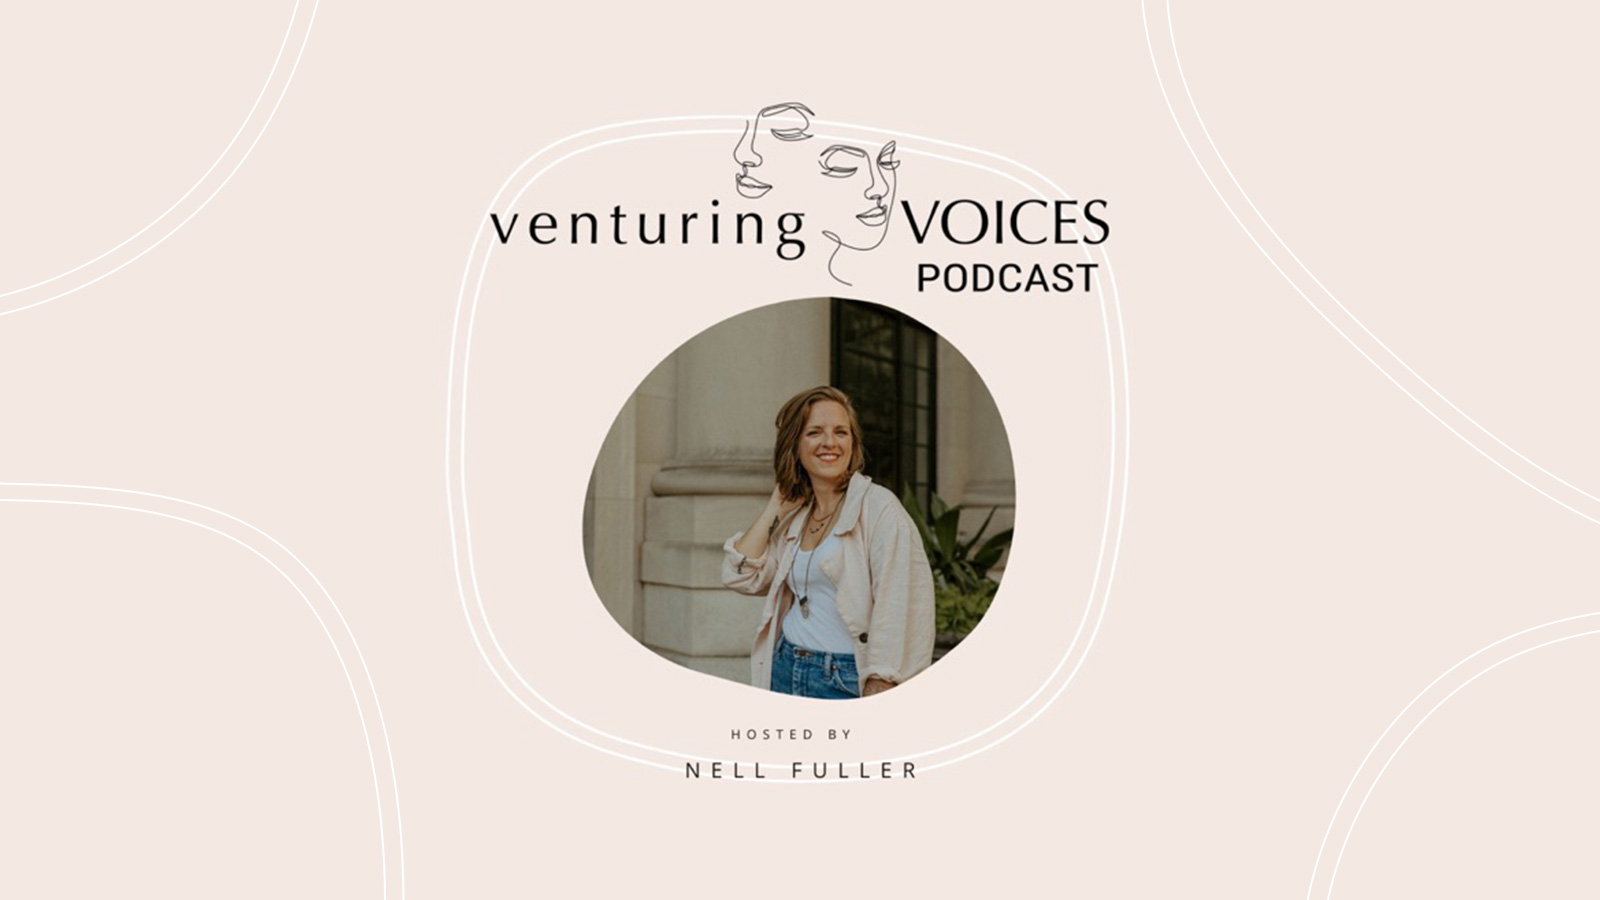 Venturing Voices Podcast: Affordable Access – Ronda Dean drew from her own experience to transform reproductive healthcare